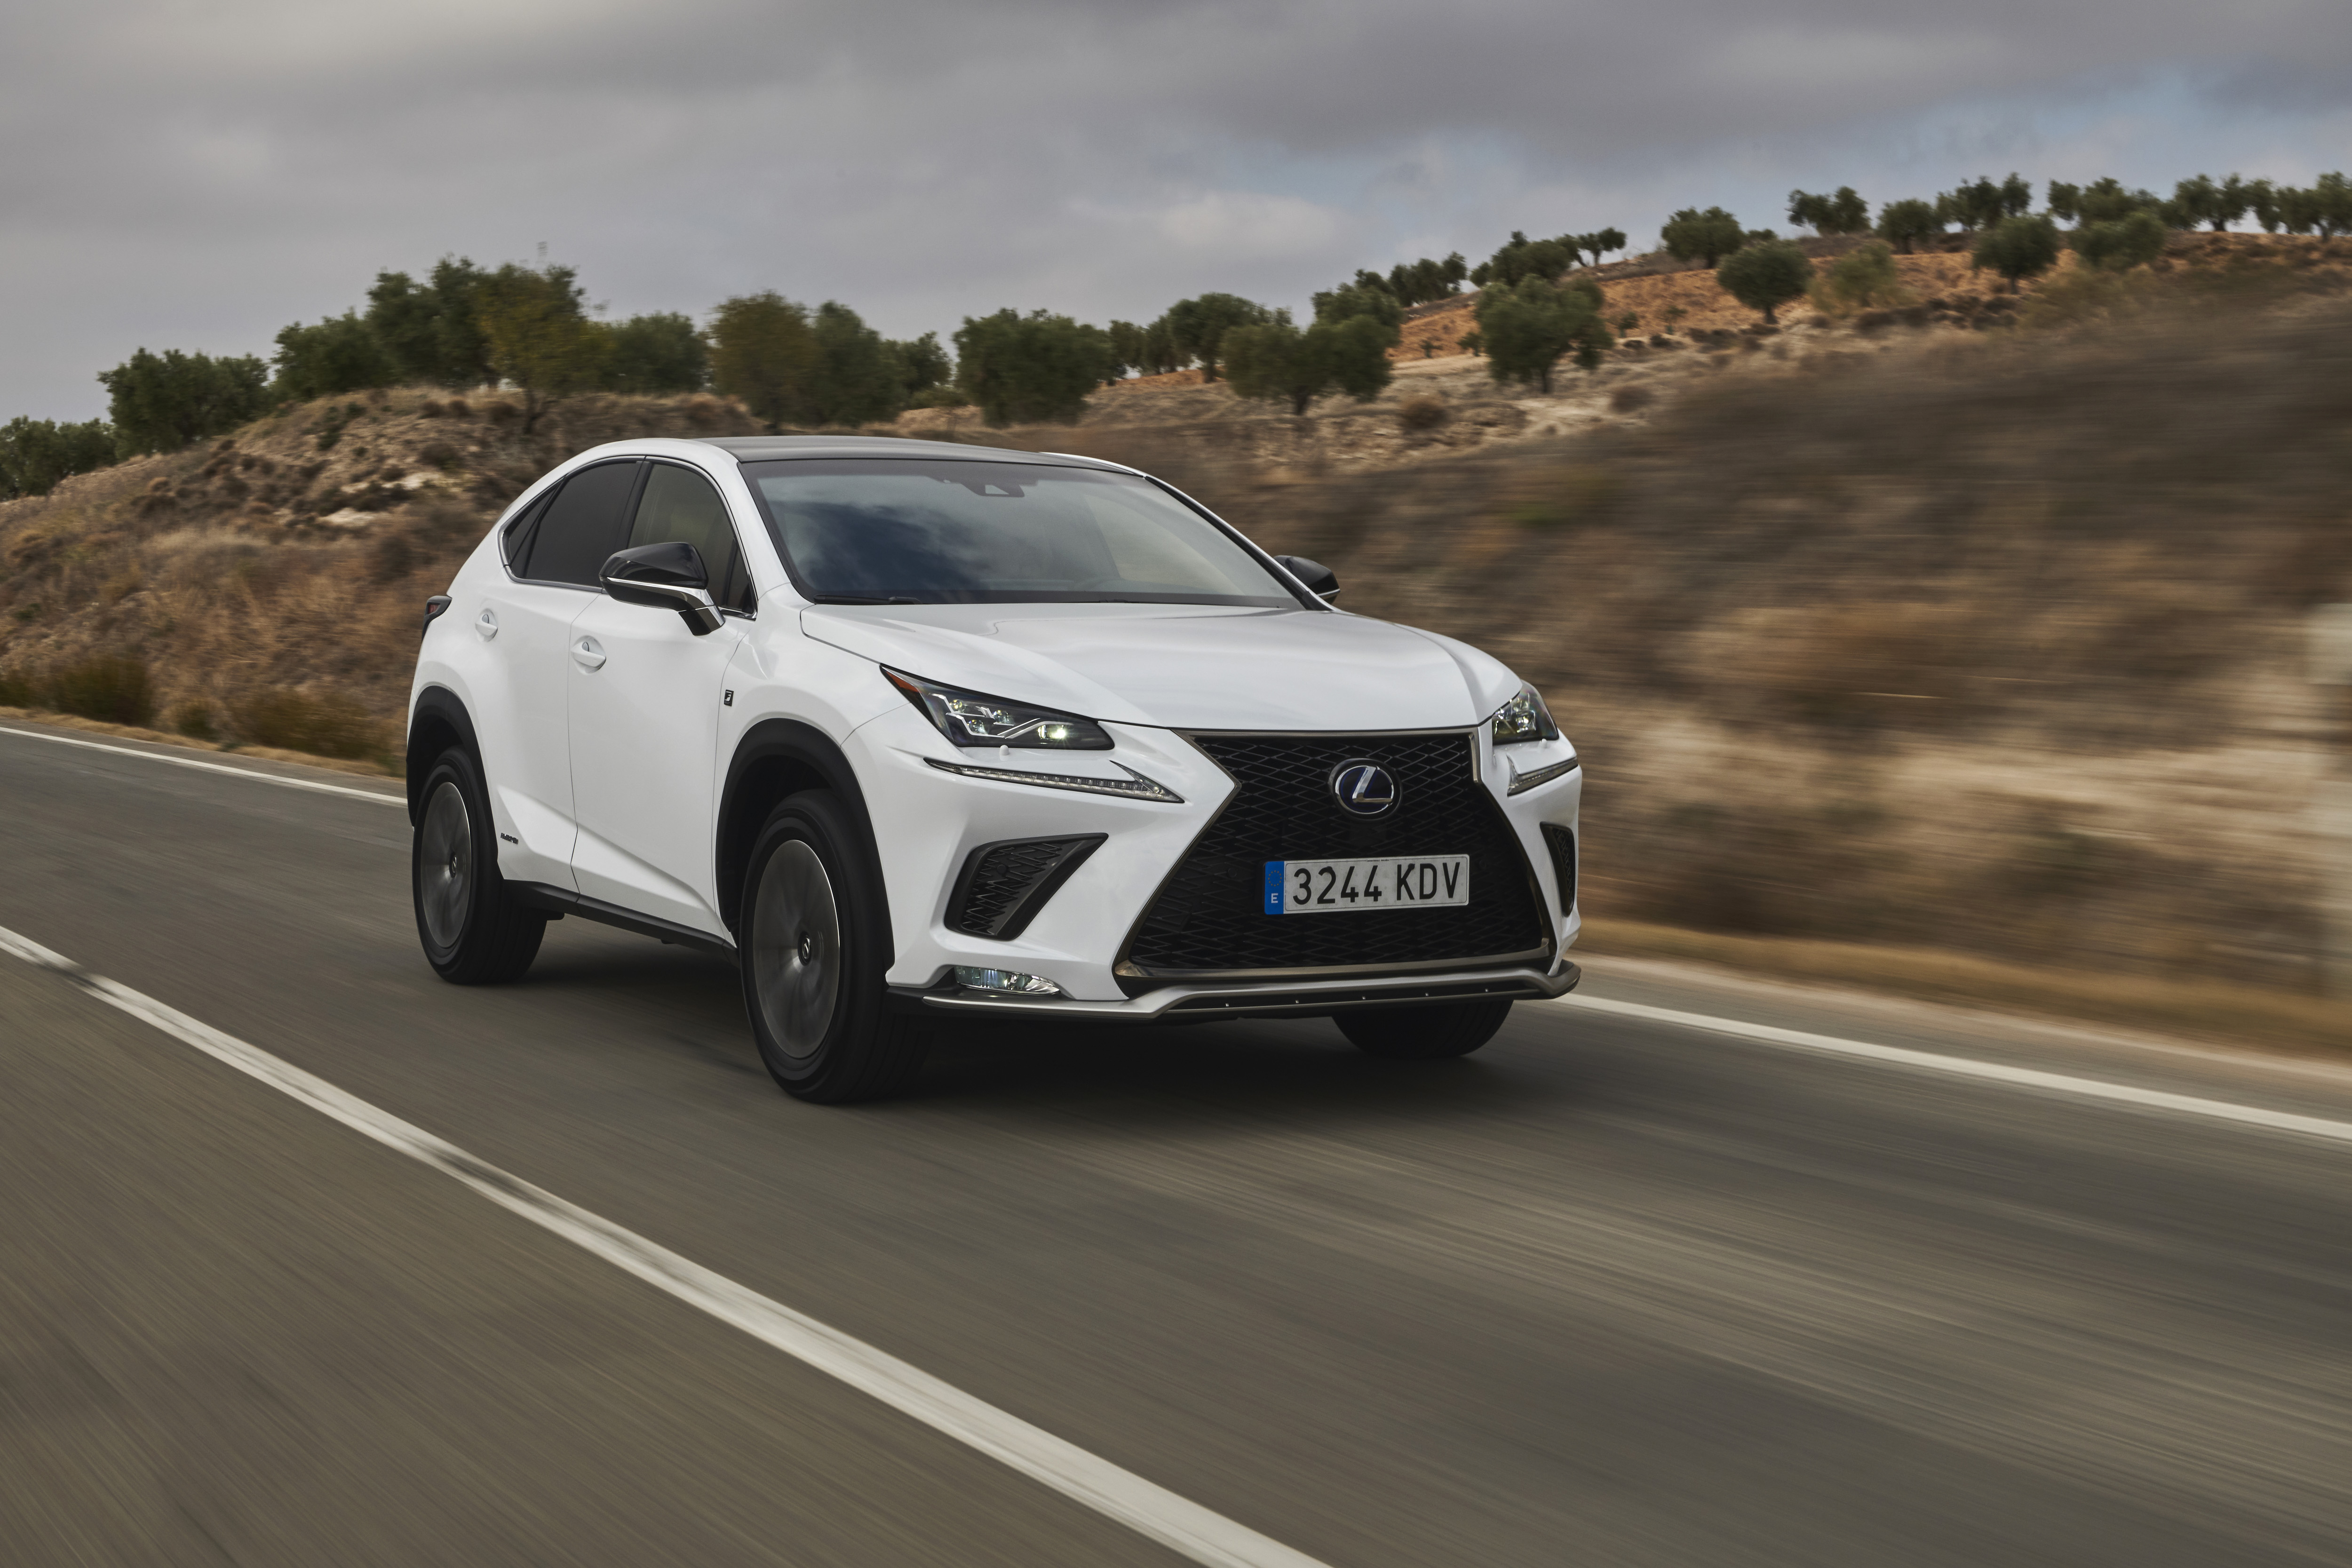 highly offered turbocharged form the topgear anticipated makes drivetrains nx malaysia malaysian dtg its in took lexus of compact covers suv debut index two models today are